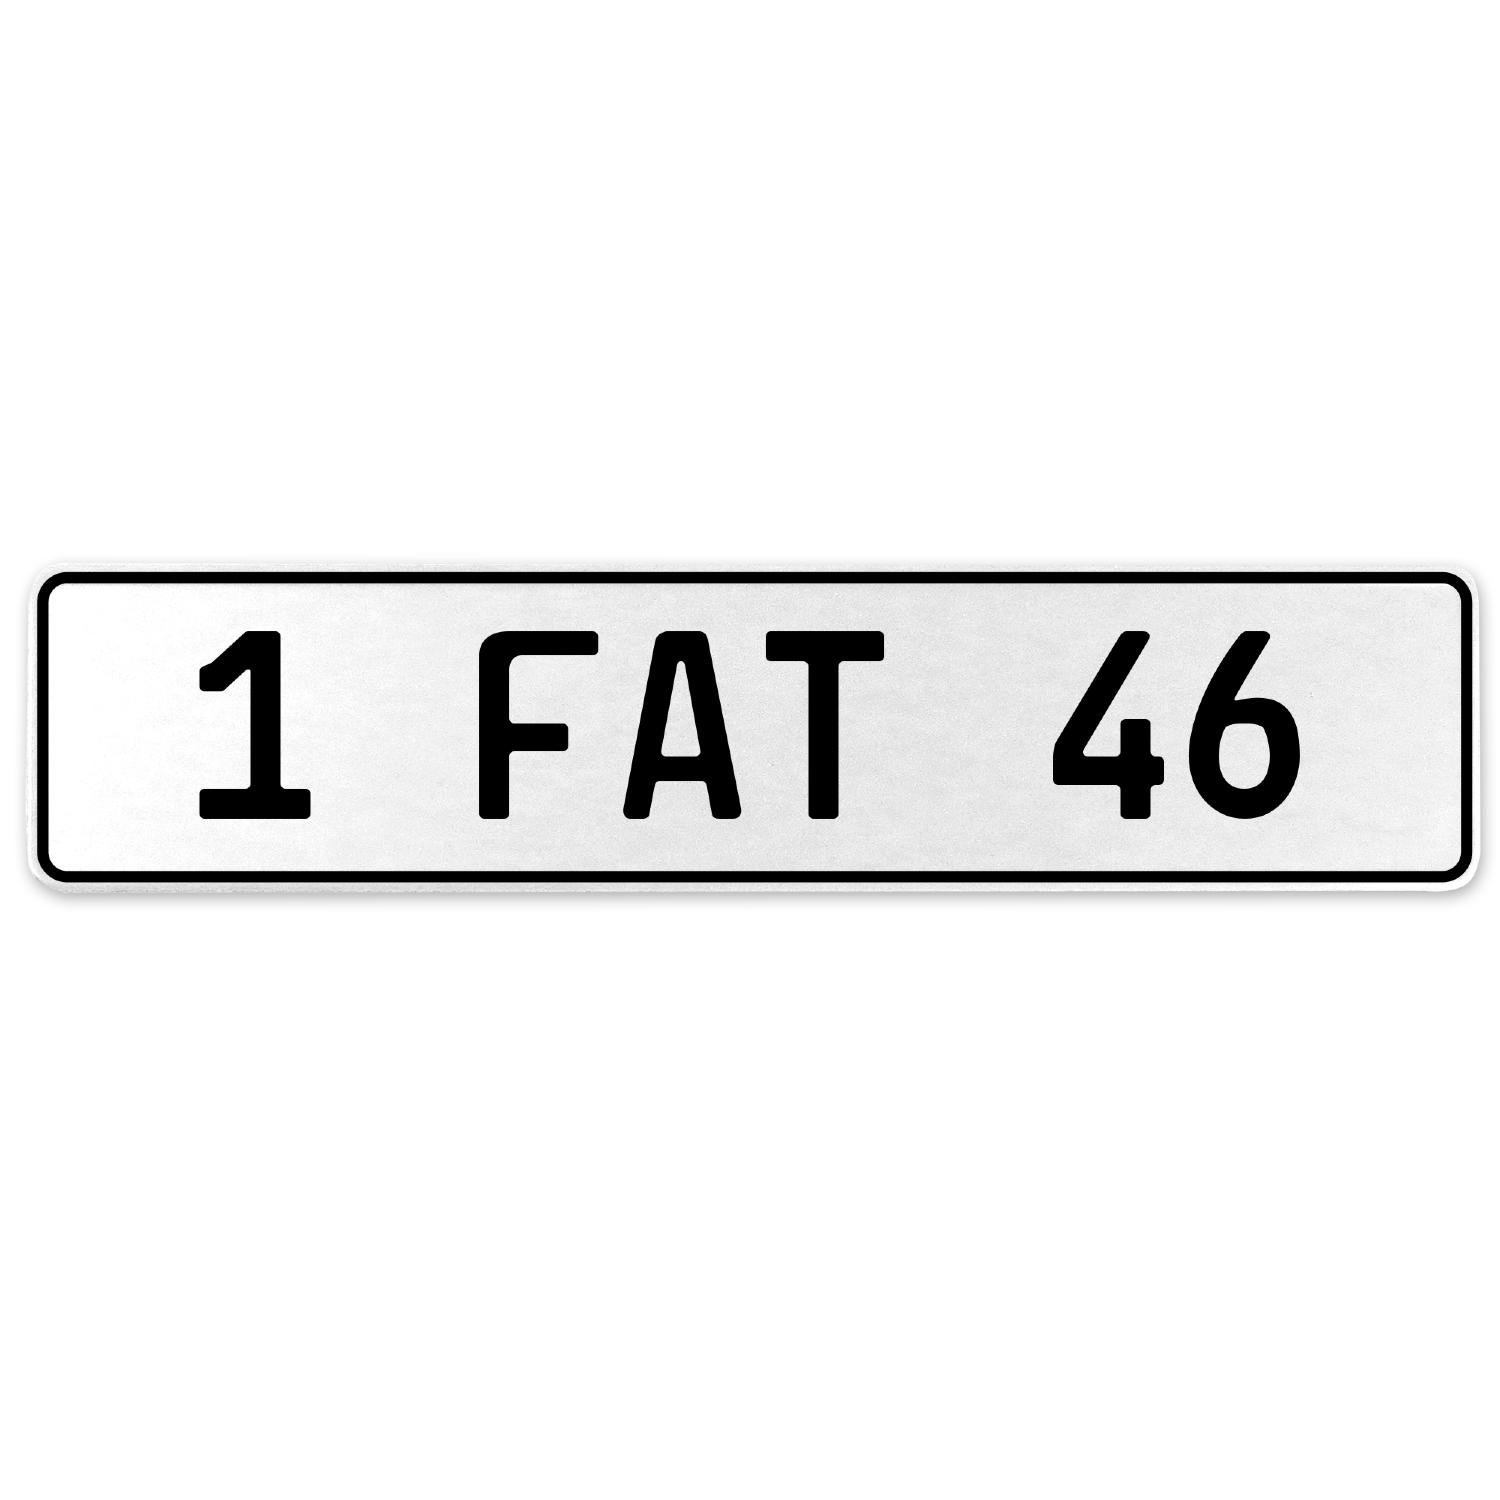 Vintage Parts 554643 1 Fat 46 White Stamped Aluminum European License Plate